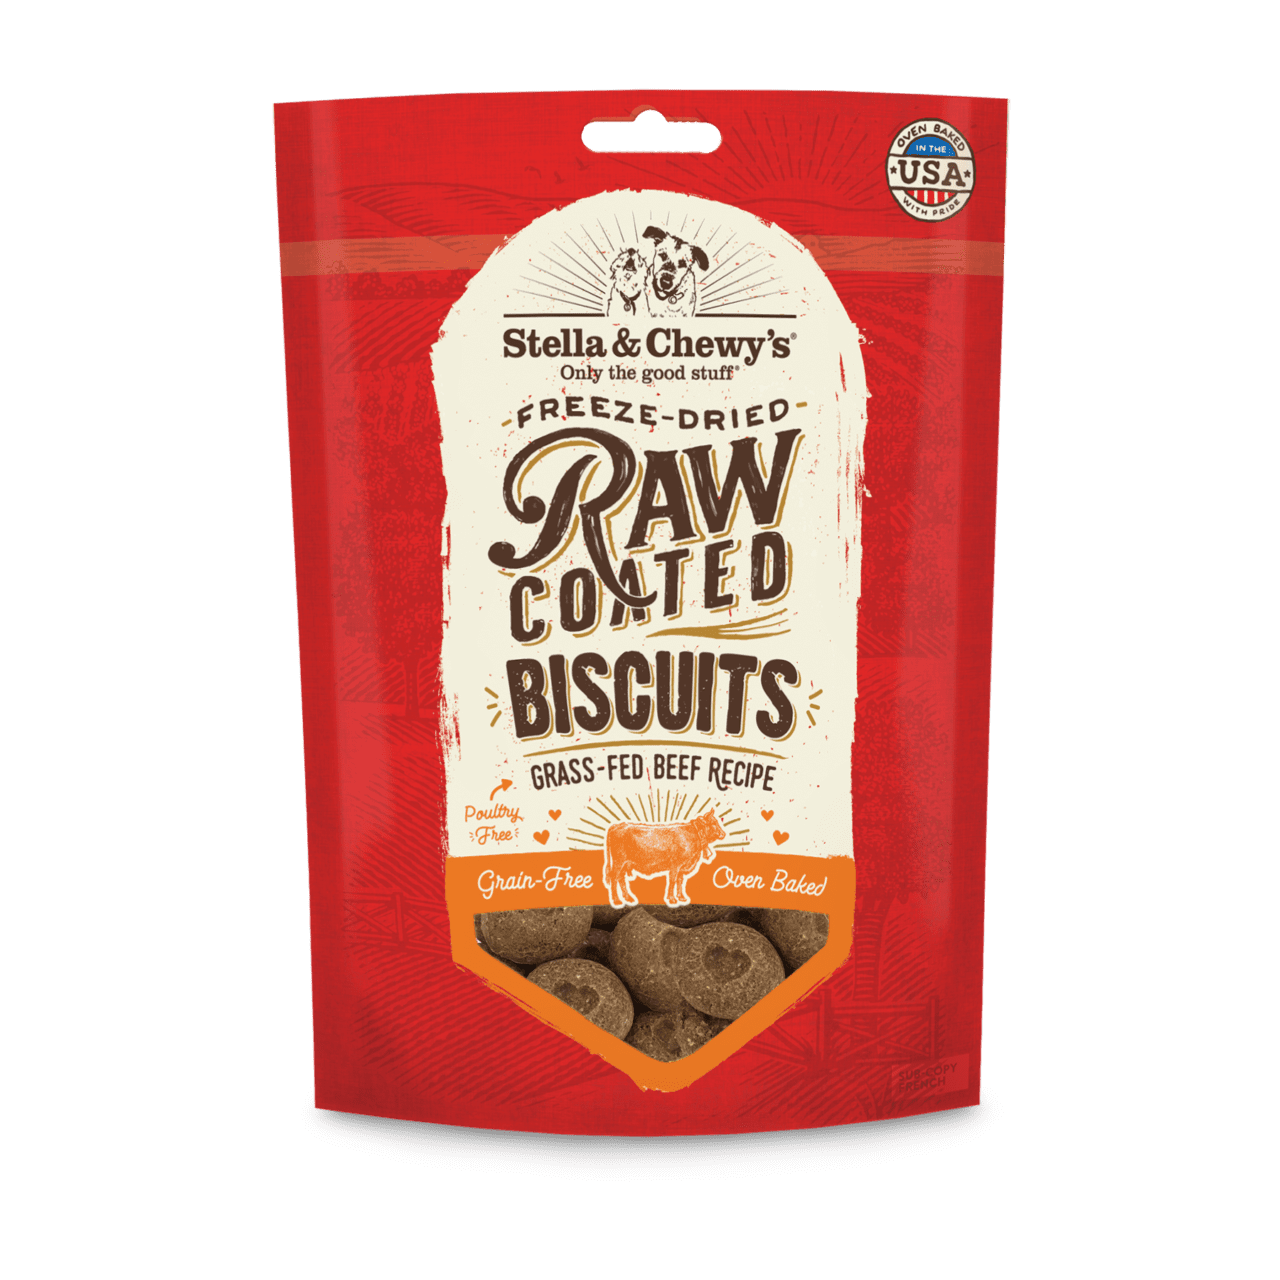 Cage-Free Chicken Raw Coated Biscuits